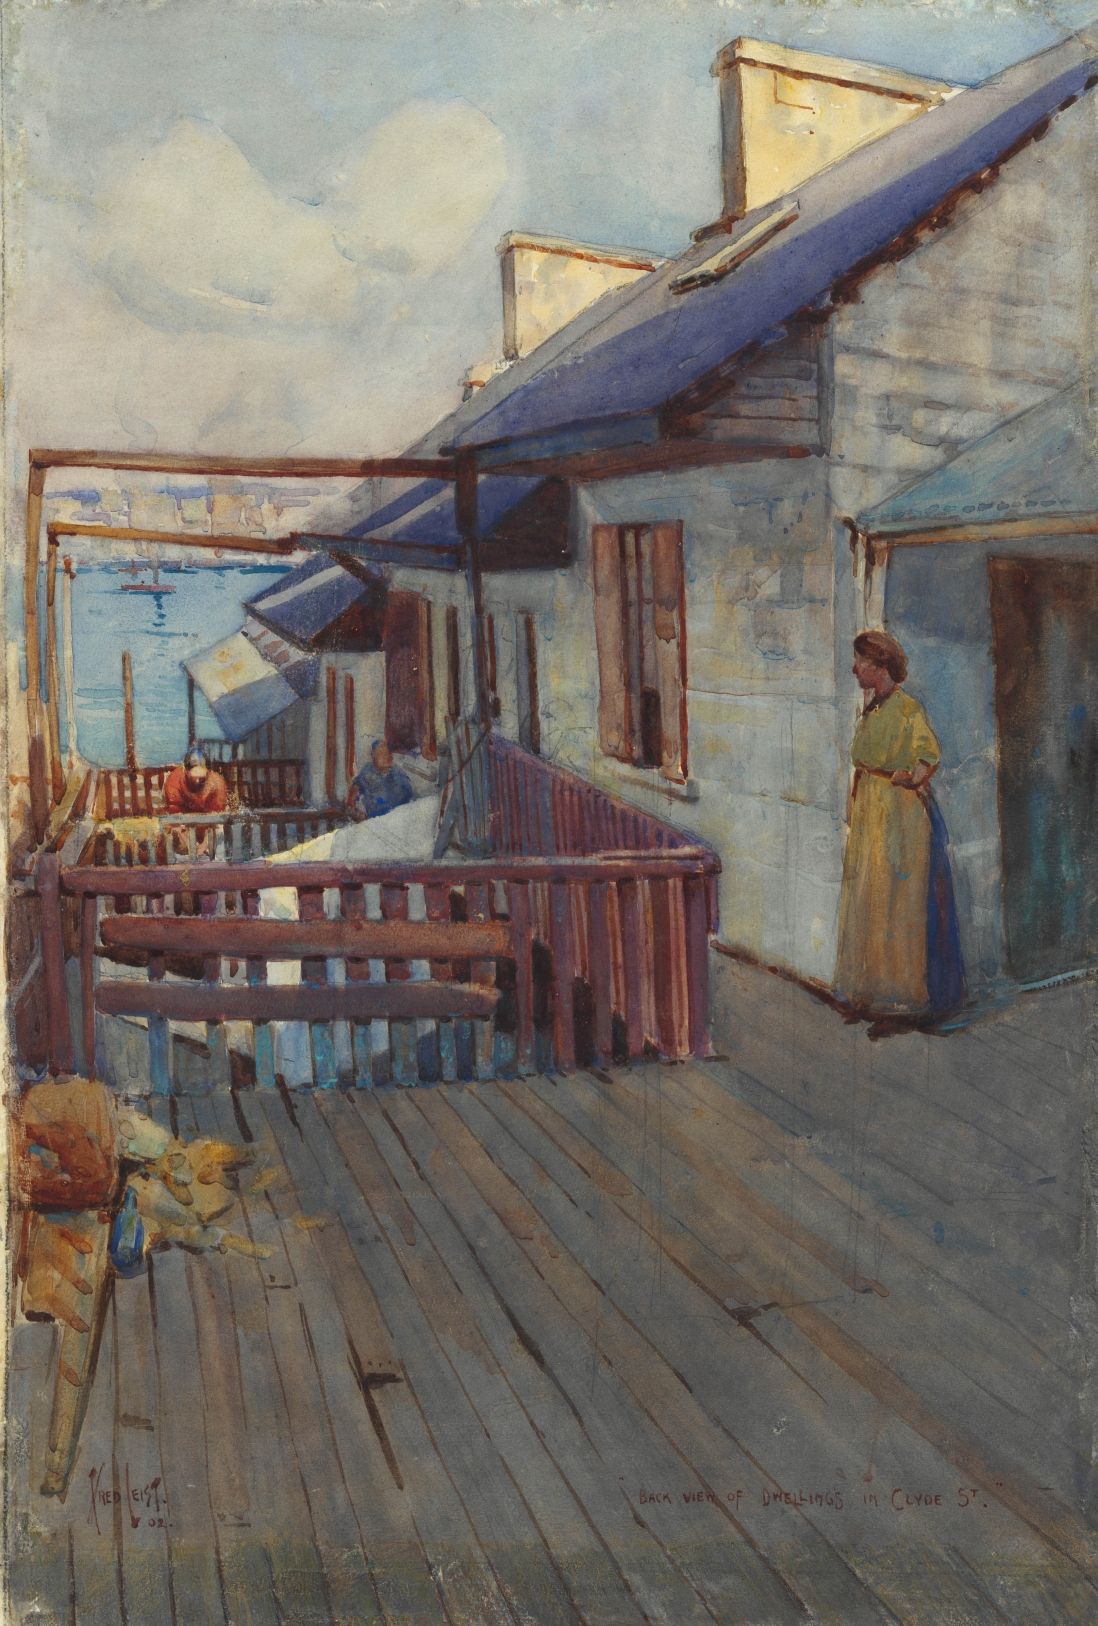 Painting showing a lady looking out over the back verandas of a row of terrace houses leading down to the water.